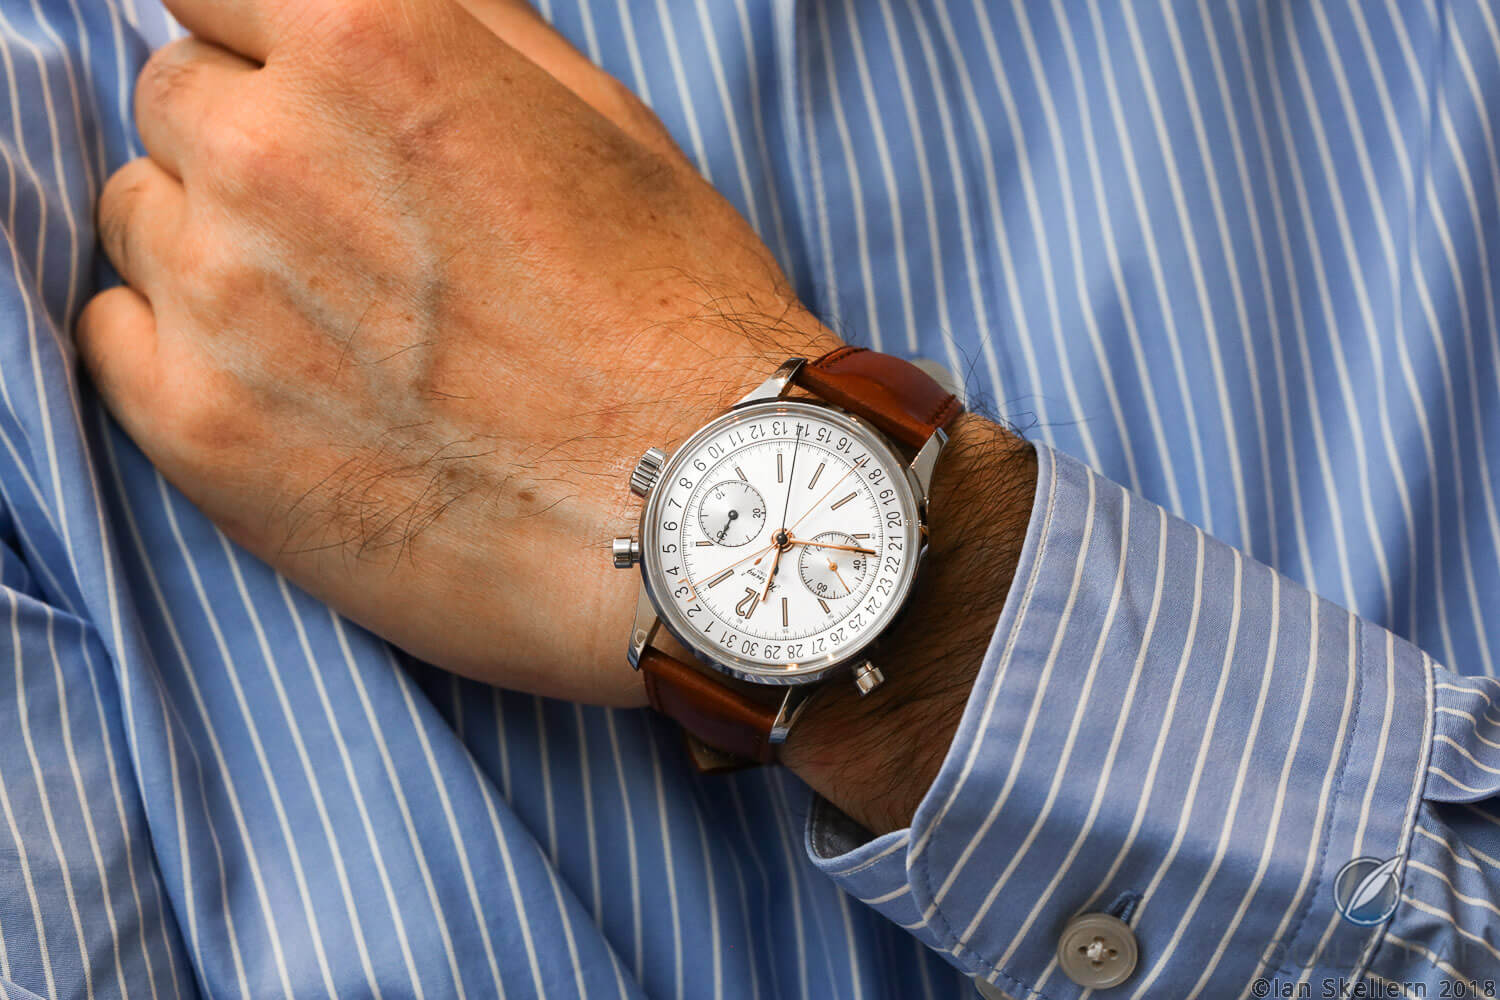 Habring2 Doppel-Felix on the wrist of Richard Habring